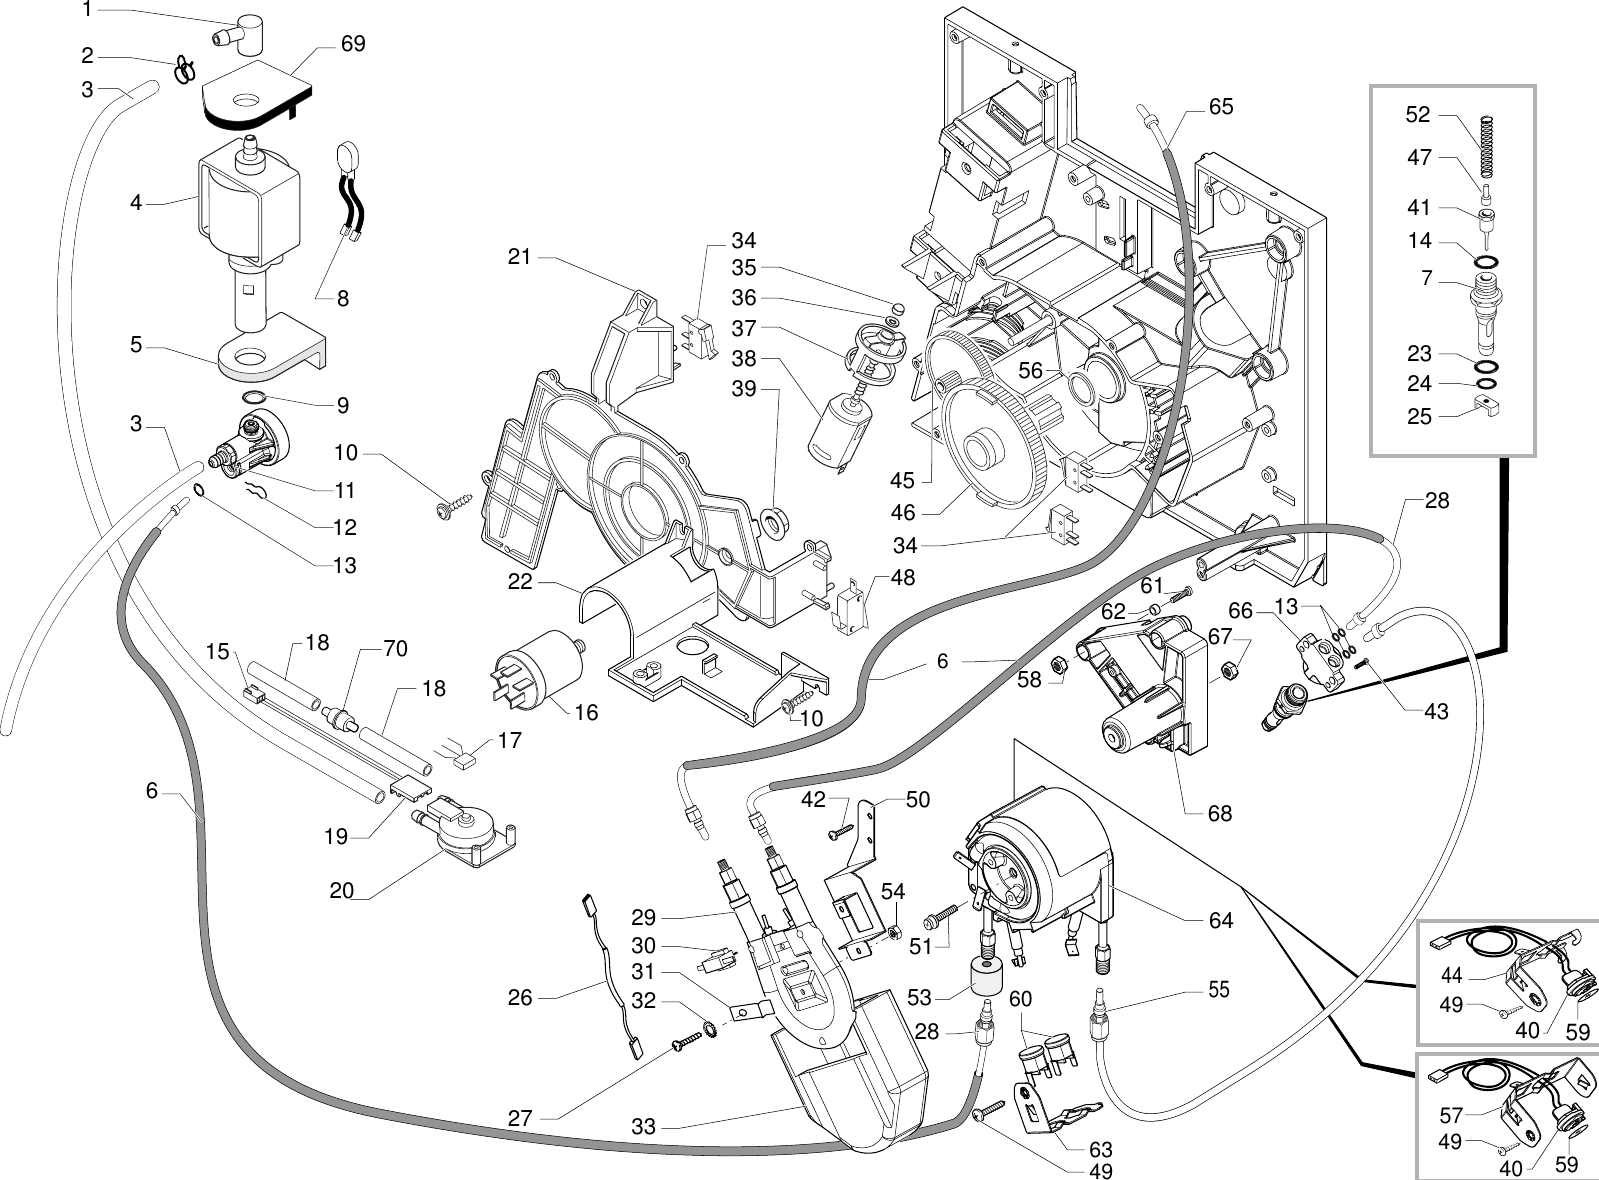 Gaggia Titanium Parts Diagram Sup027YDR_E74075_01_rev04